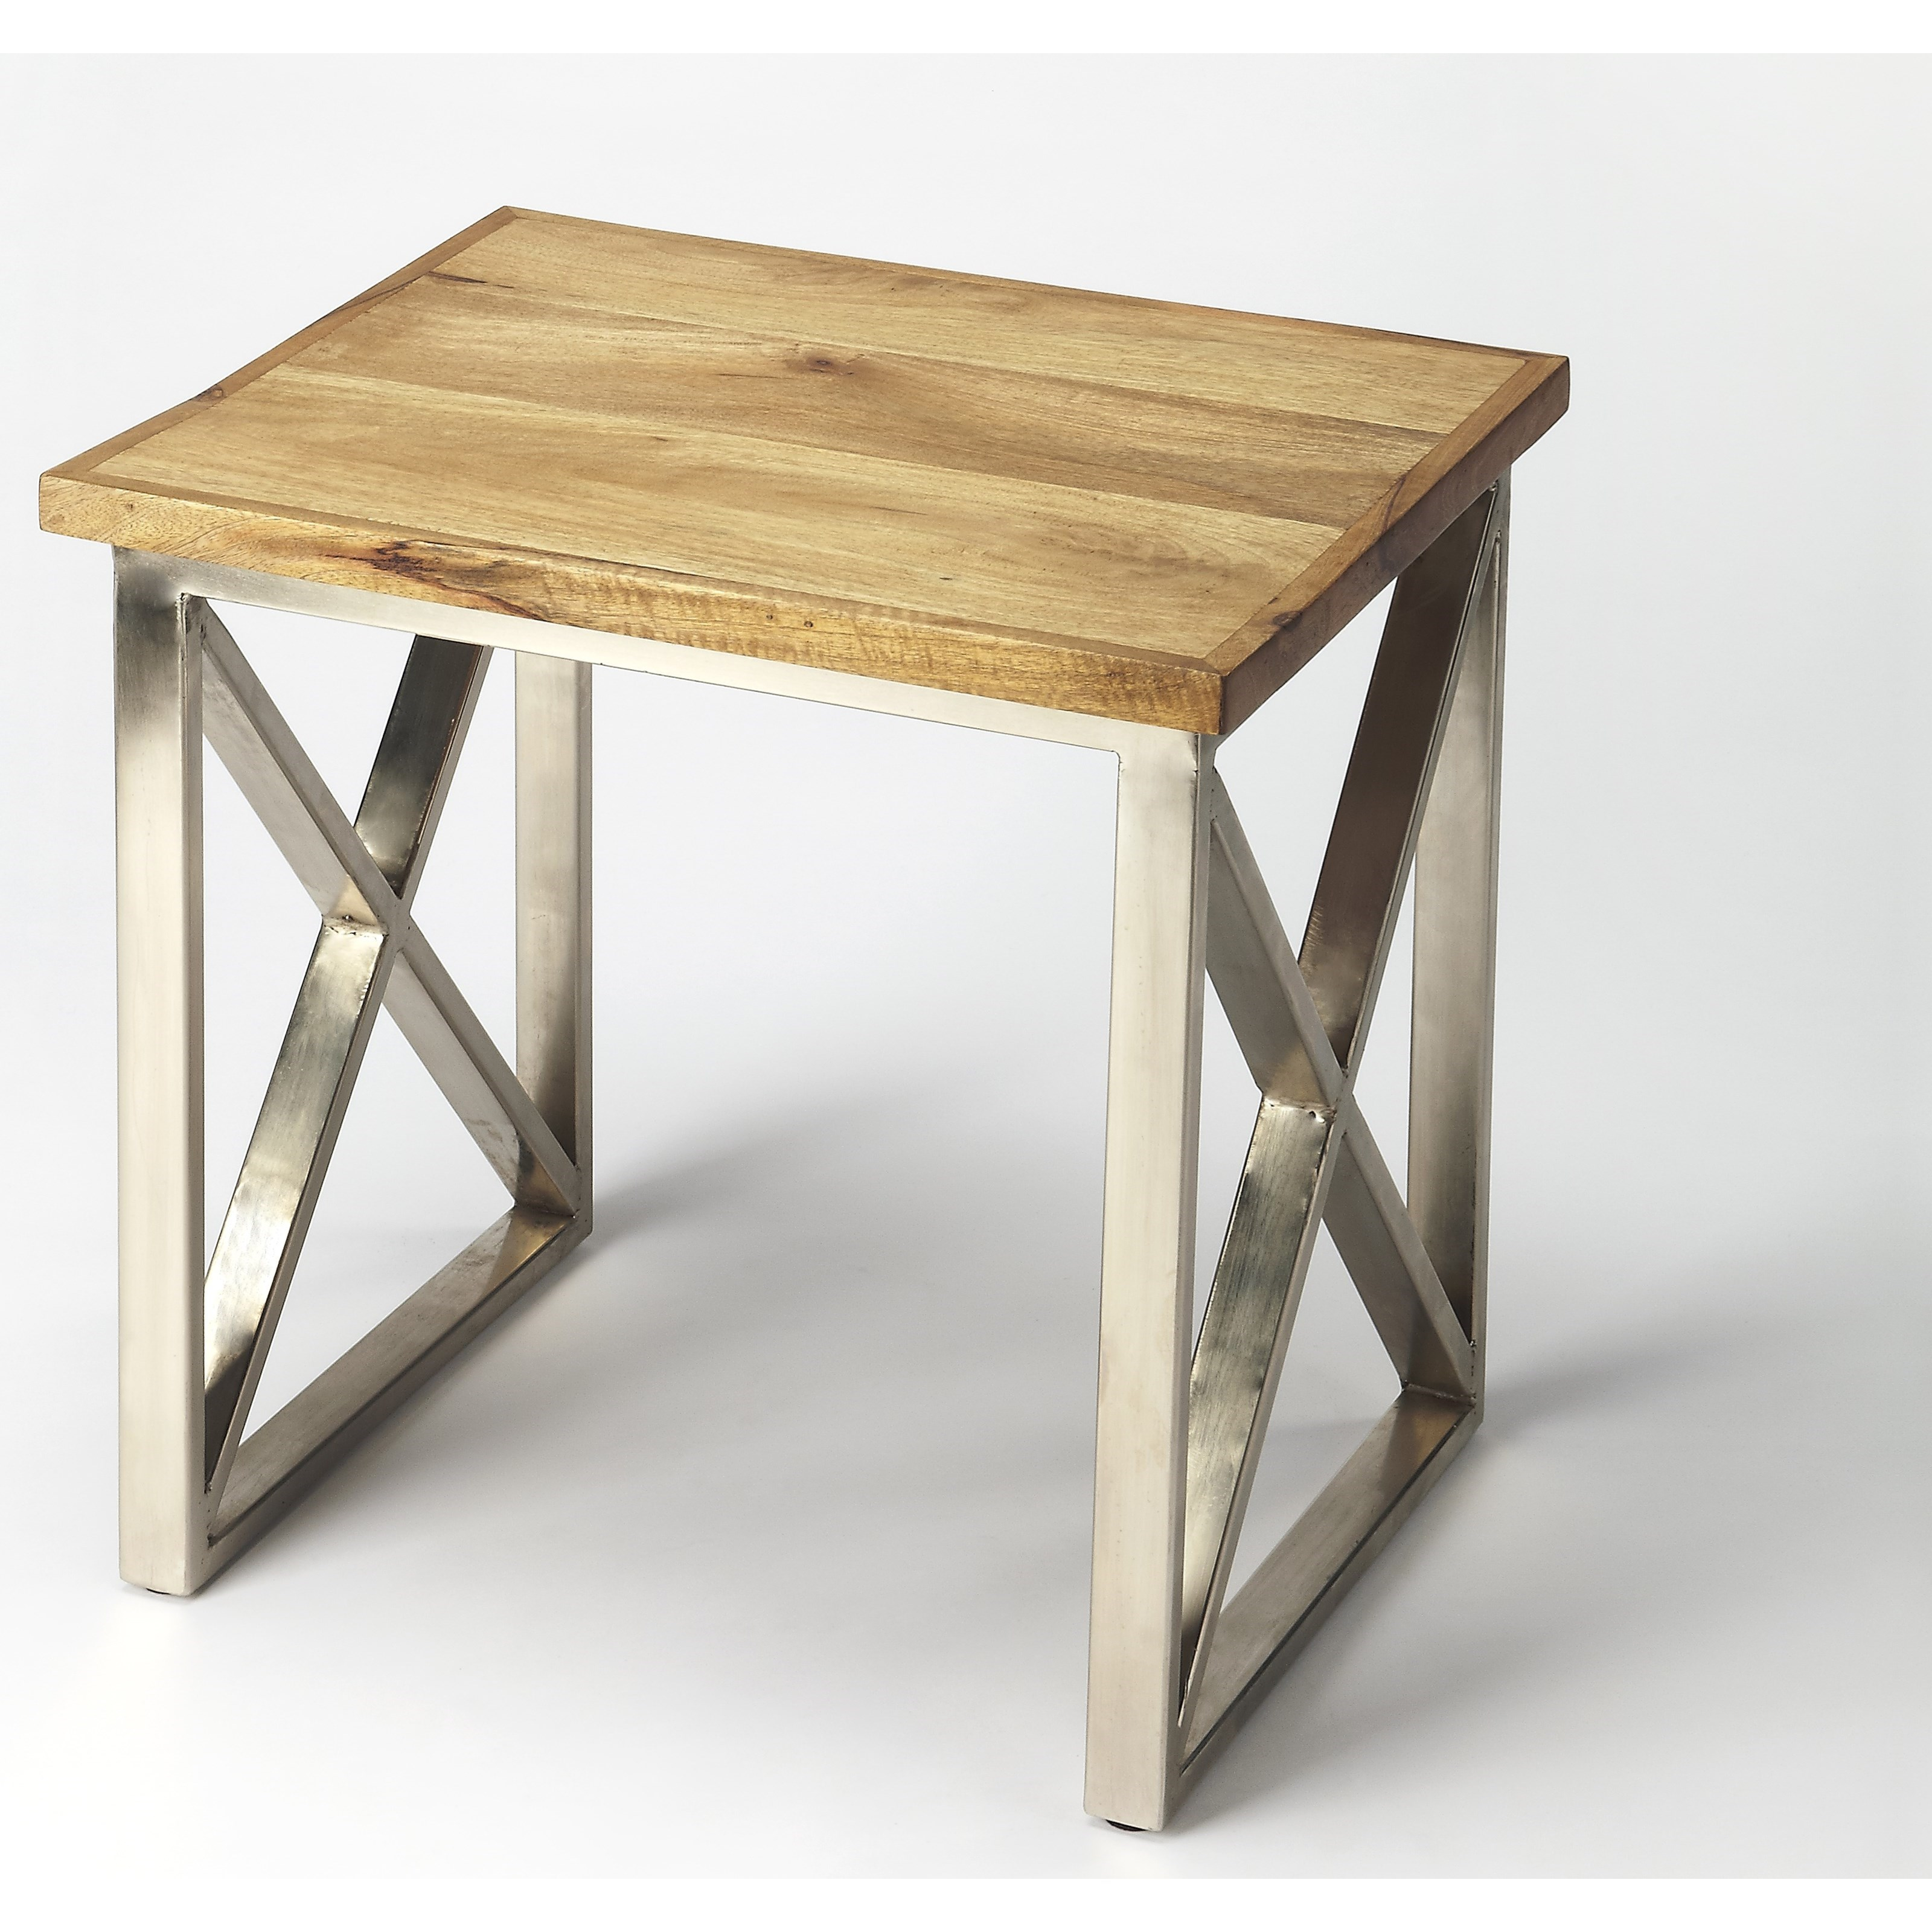 Butler Specialty Company Industrial Chic End Table - Item Number: 3683330